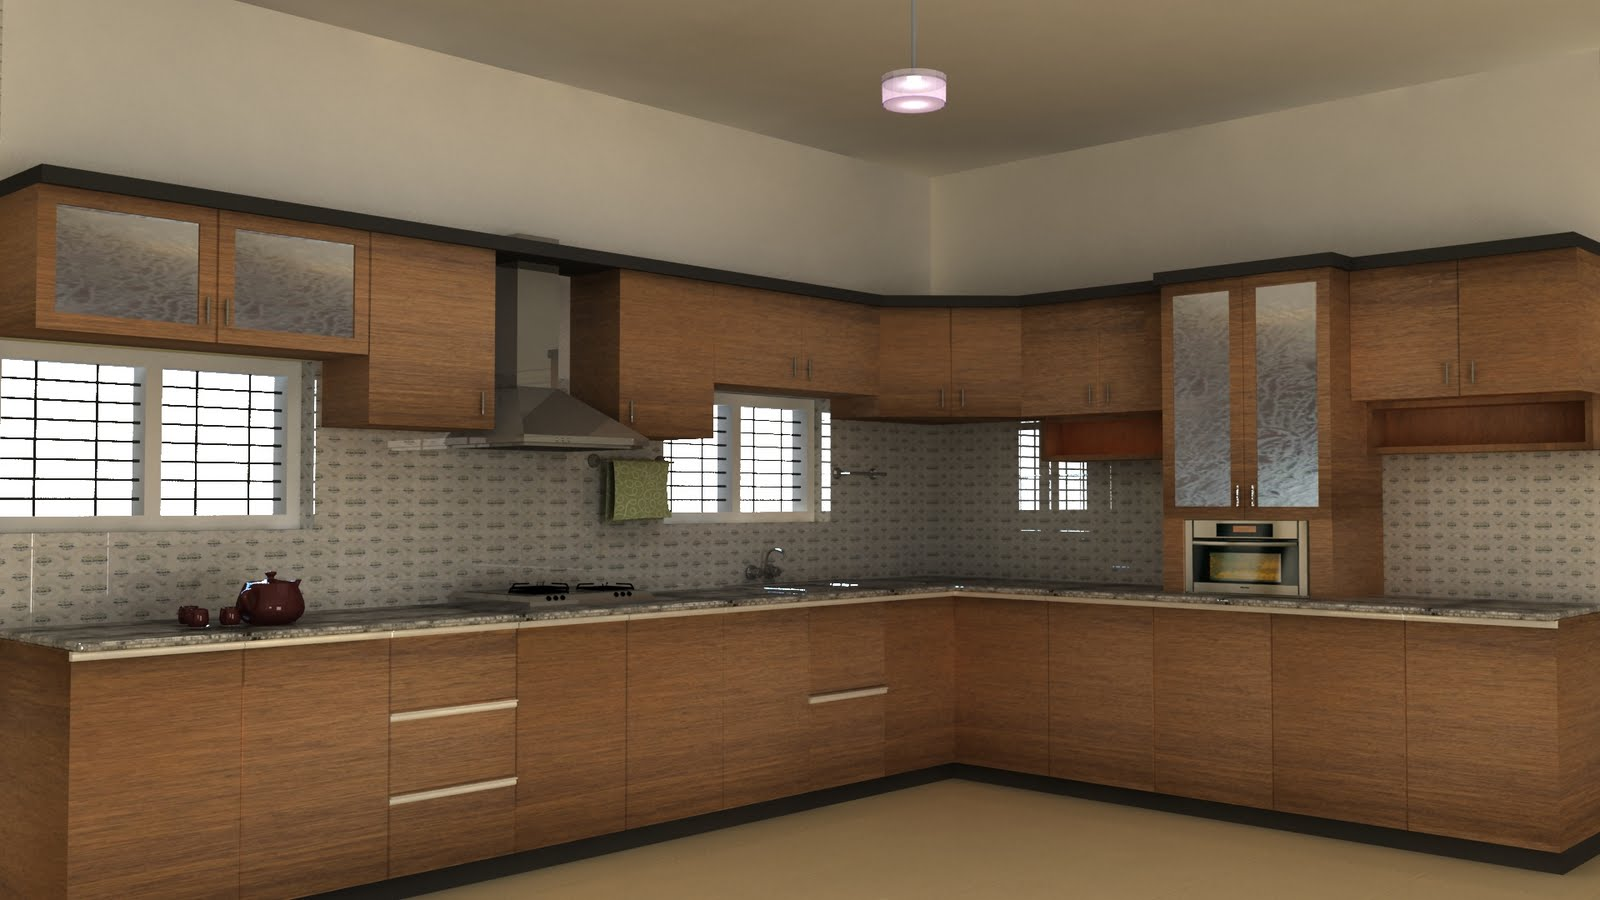 Architectural designing kitchen interiors for Kitchen interior designs pictures